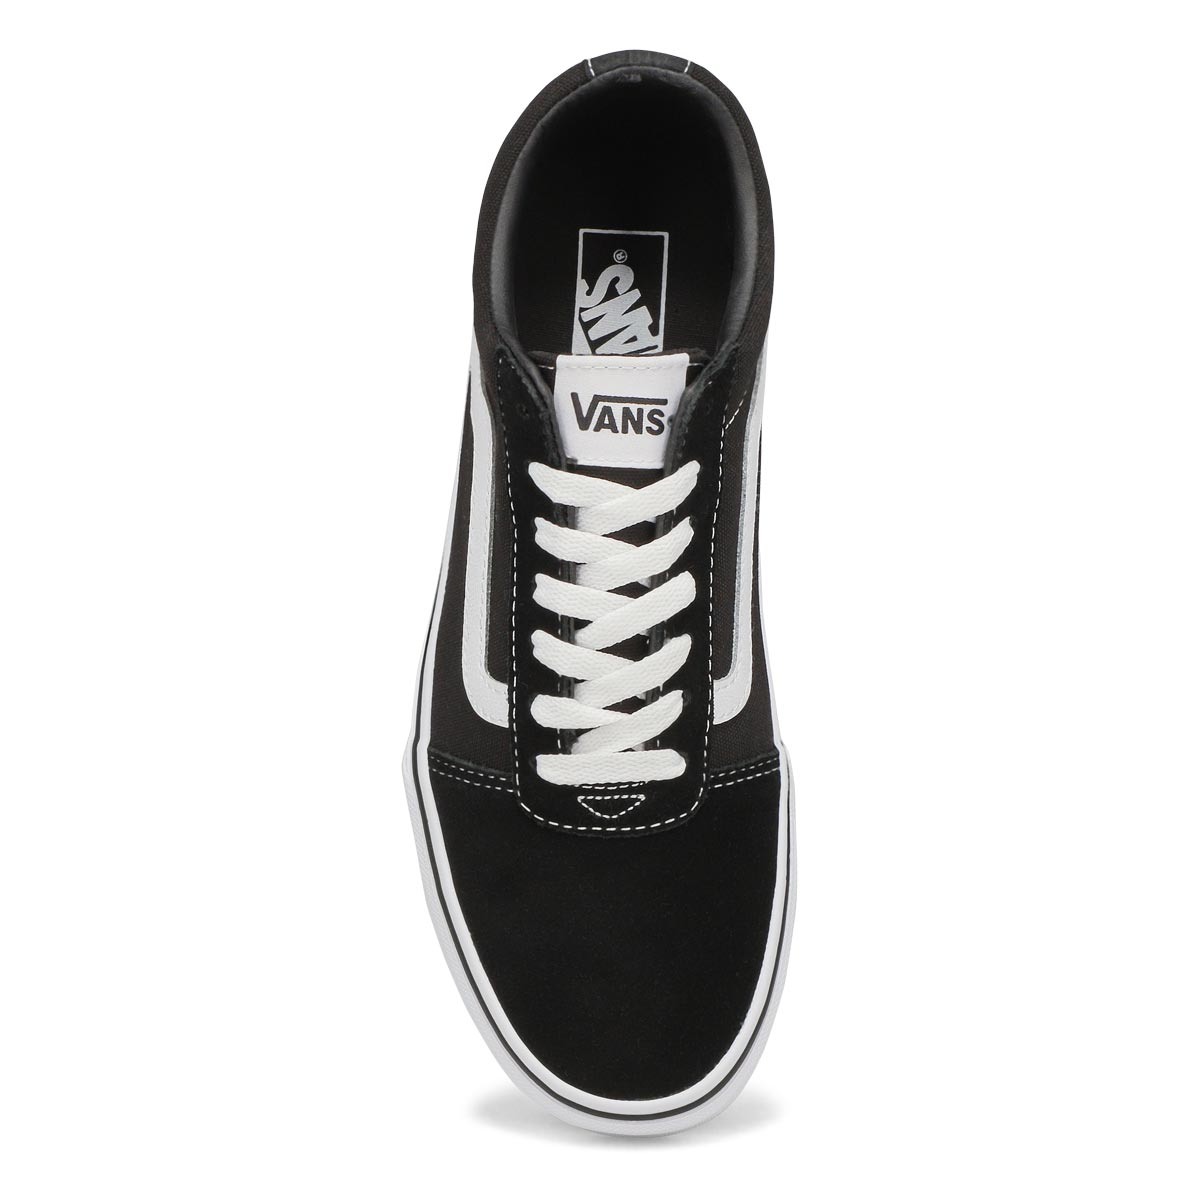 Mns Ward blk/wht lace up snkr